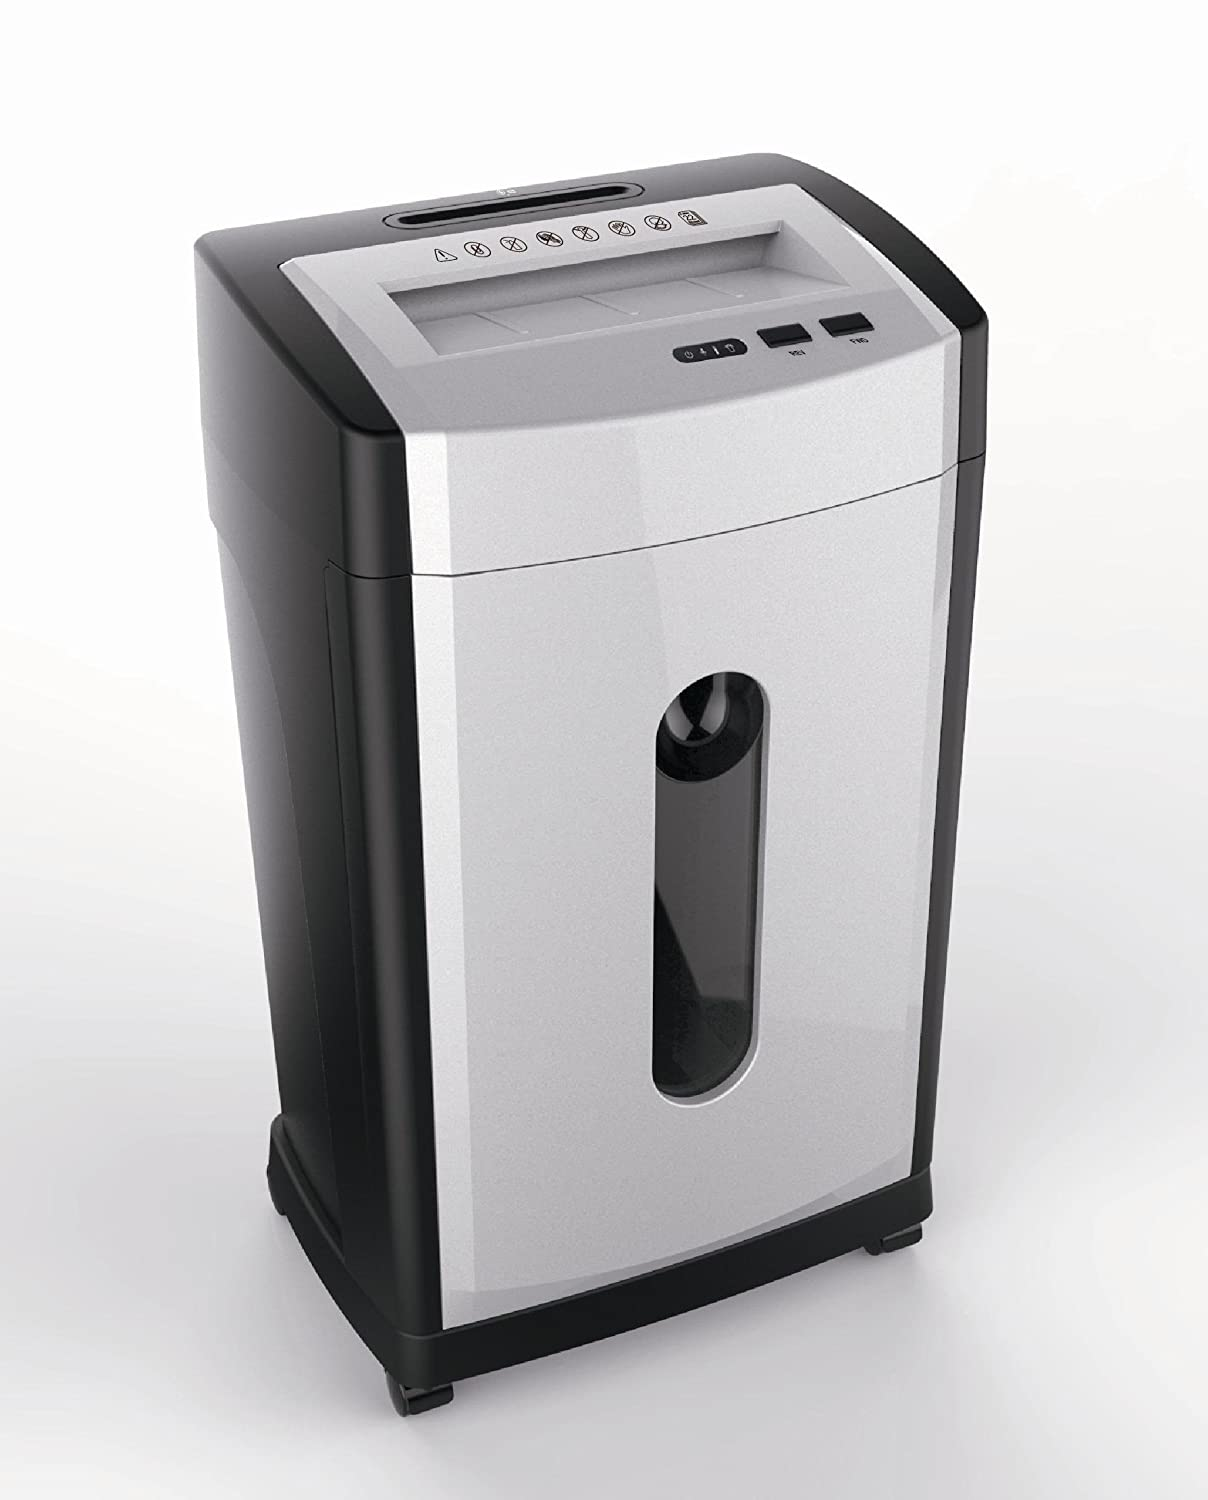 Top 10 Best Credit Card CD/DVD Shredders for Home Use Reviews 2018 ...